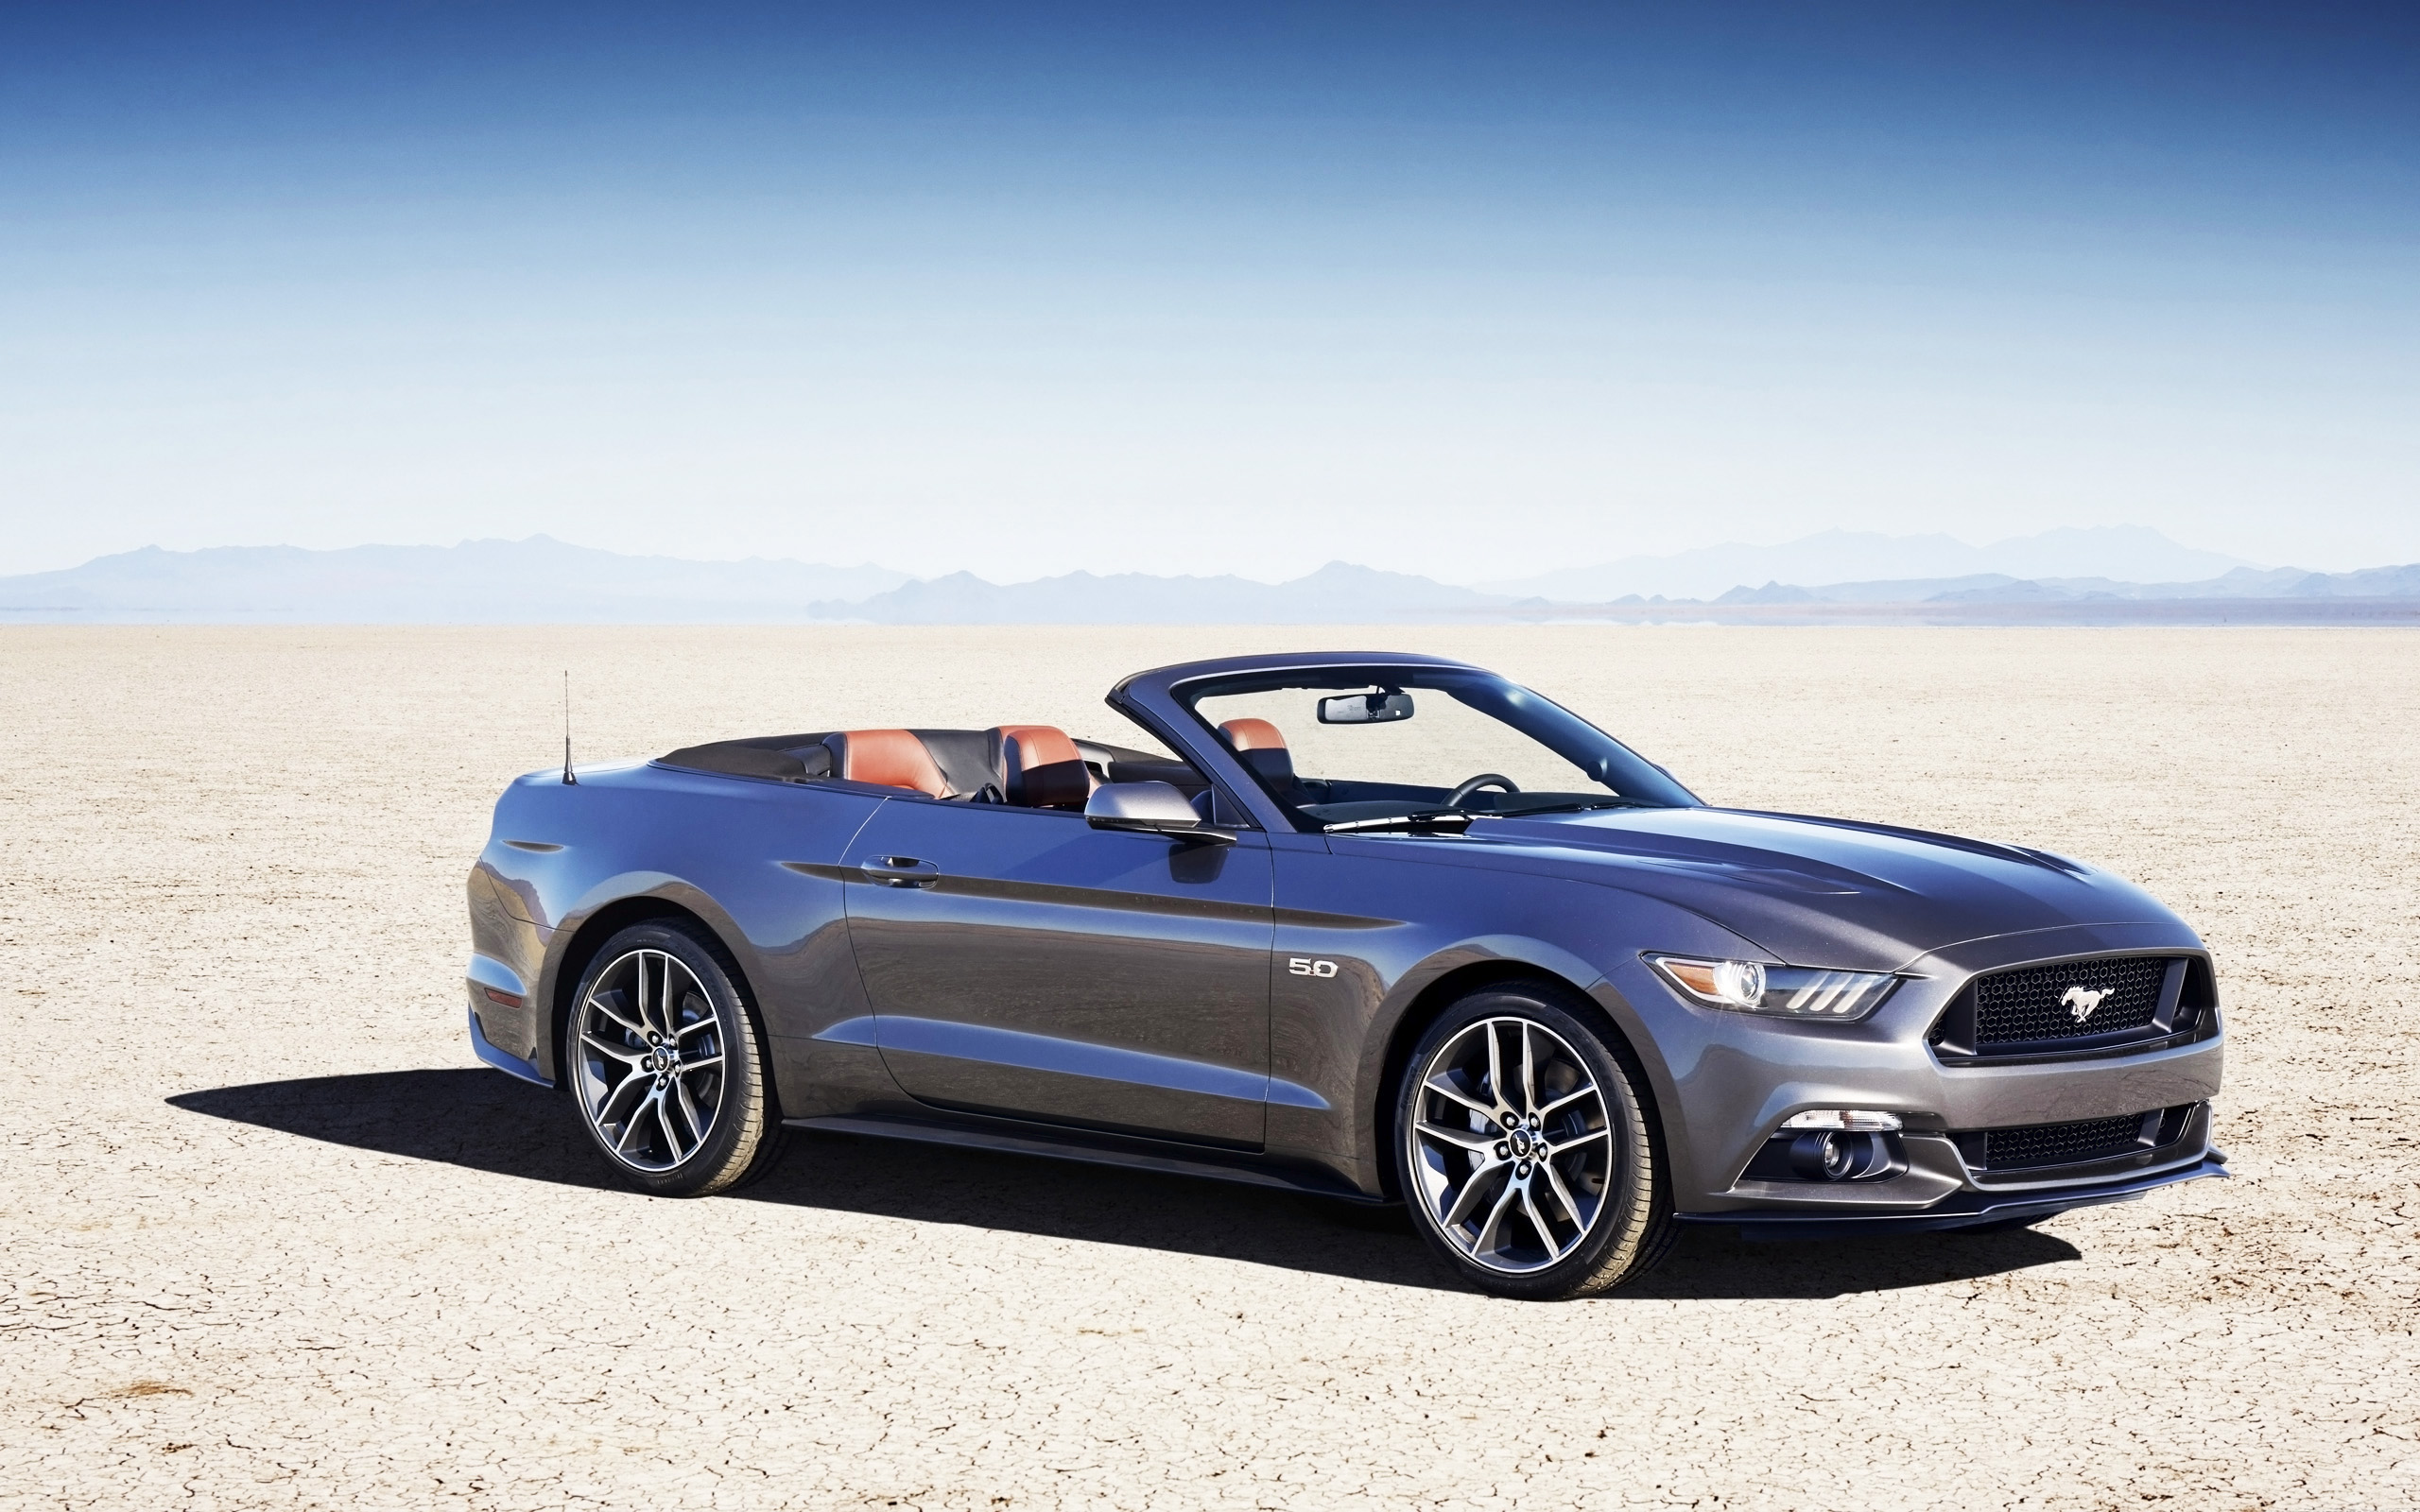 2015 ford mustang convertible wallpaper hd car. Black Bedroom Furniture Sets. Home Design Ideas